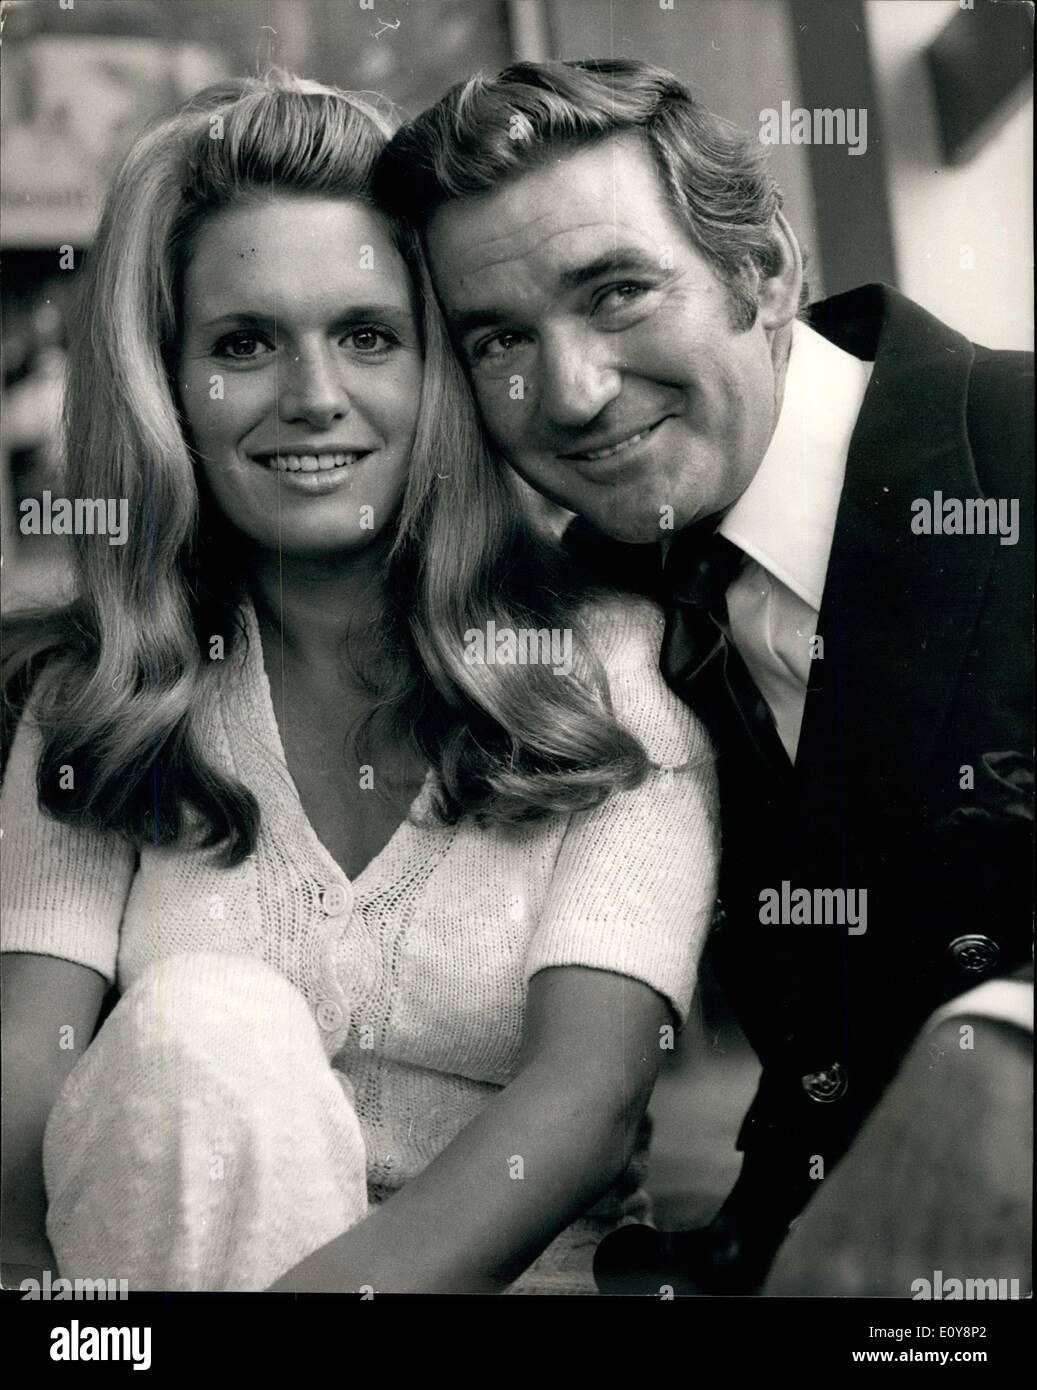 May 05, 1969 - Reception for Rod Taylor and Carol White - stars of the new film ''The Man who had power over Women'': A press reception was held today for film stars, Rod Taylor and Carol White to launch the shooting in London tomorrow of the new Avco Embassy fim ''The Man who had Power over women'' in which they co-star. Caroll will be remebered for her star role in the TV production 'Cathy', Come home' and 'Poor Cow''. Photo shows Rod Taylor takes Carol White pictured at today's press reception at the Playboy Club. - Stock Image